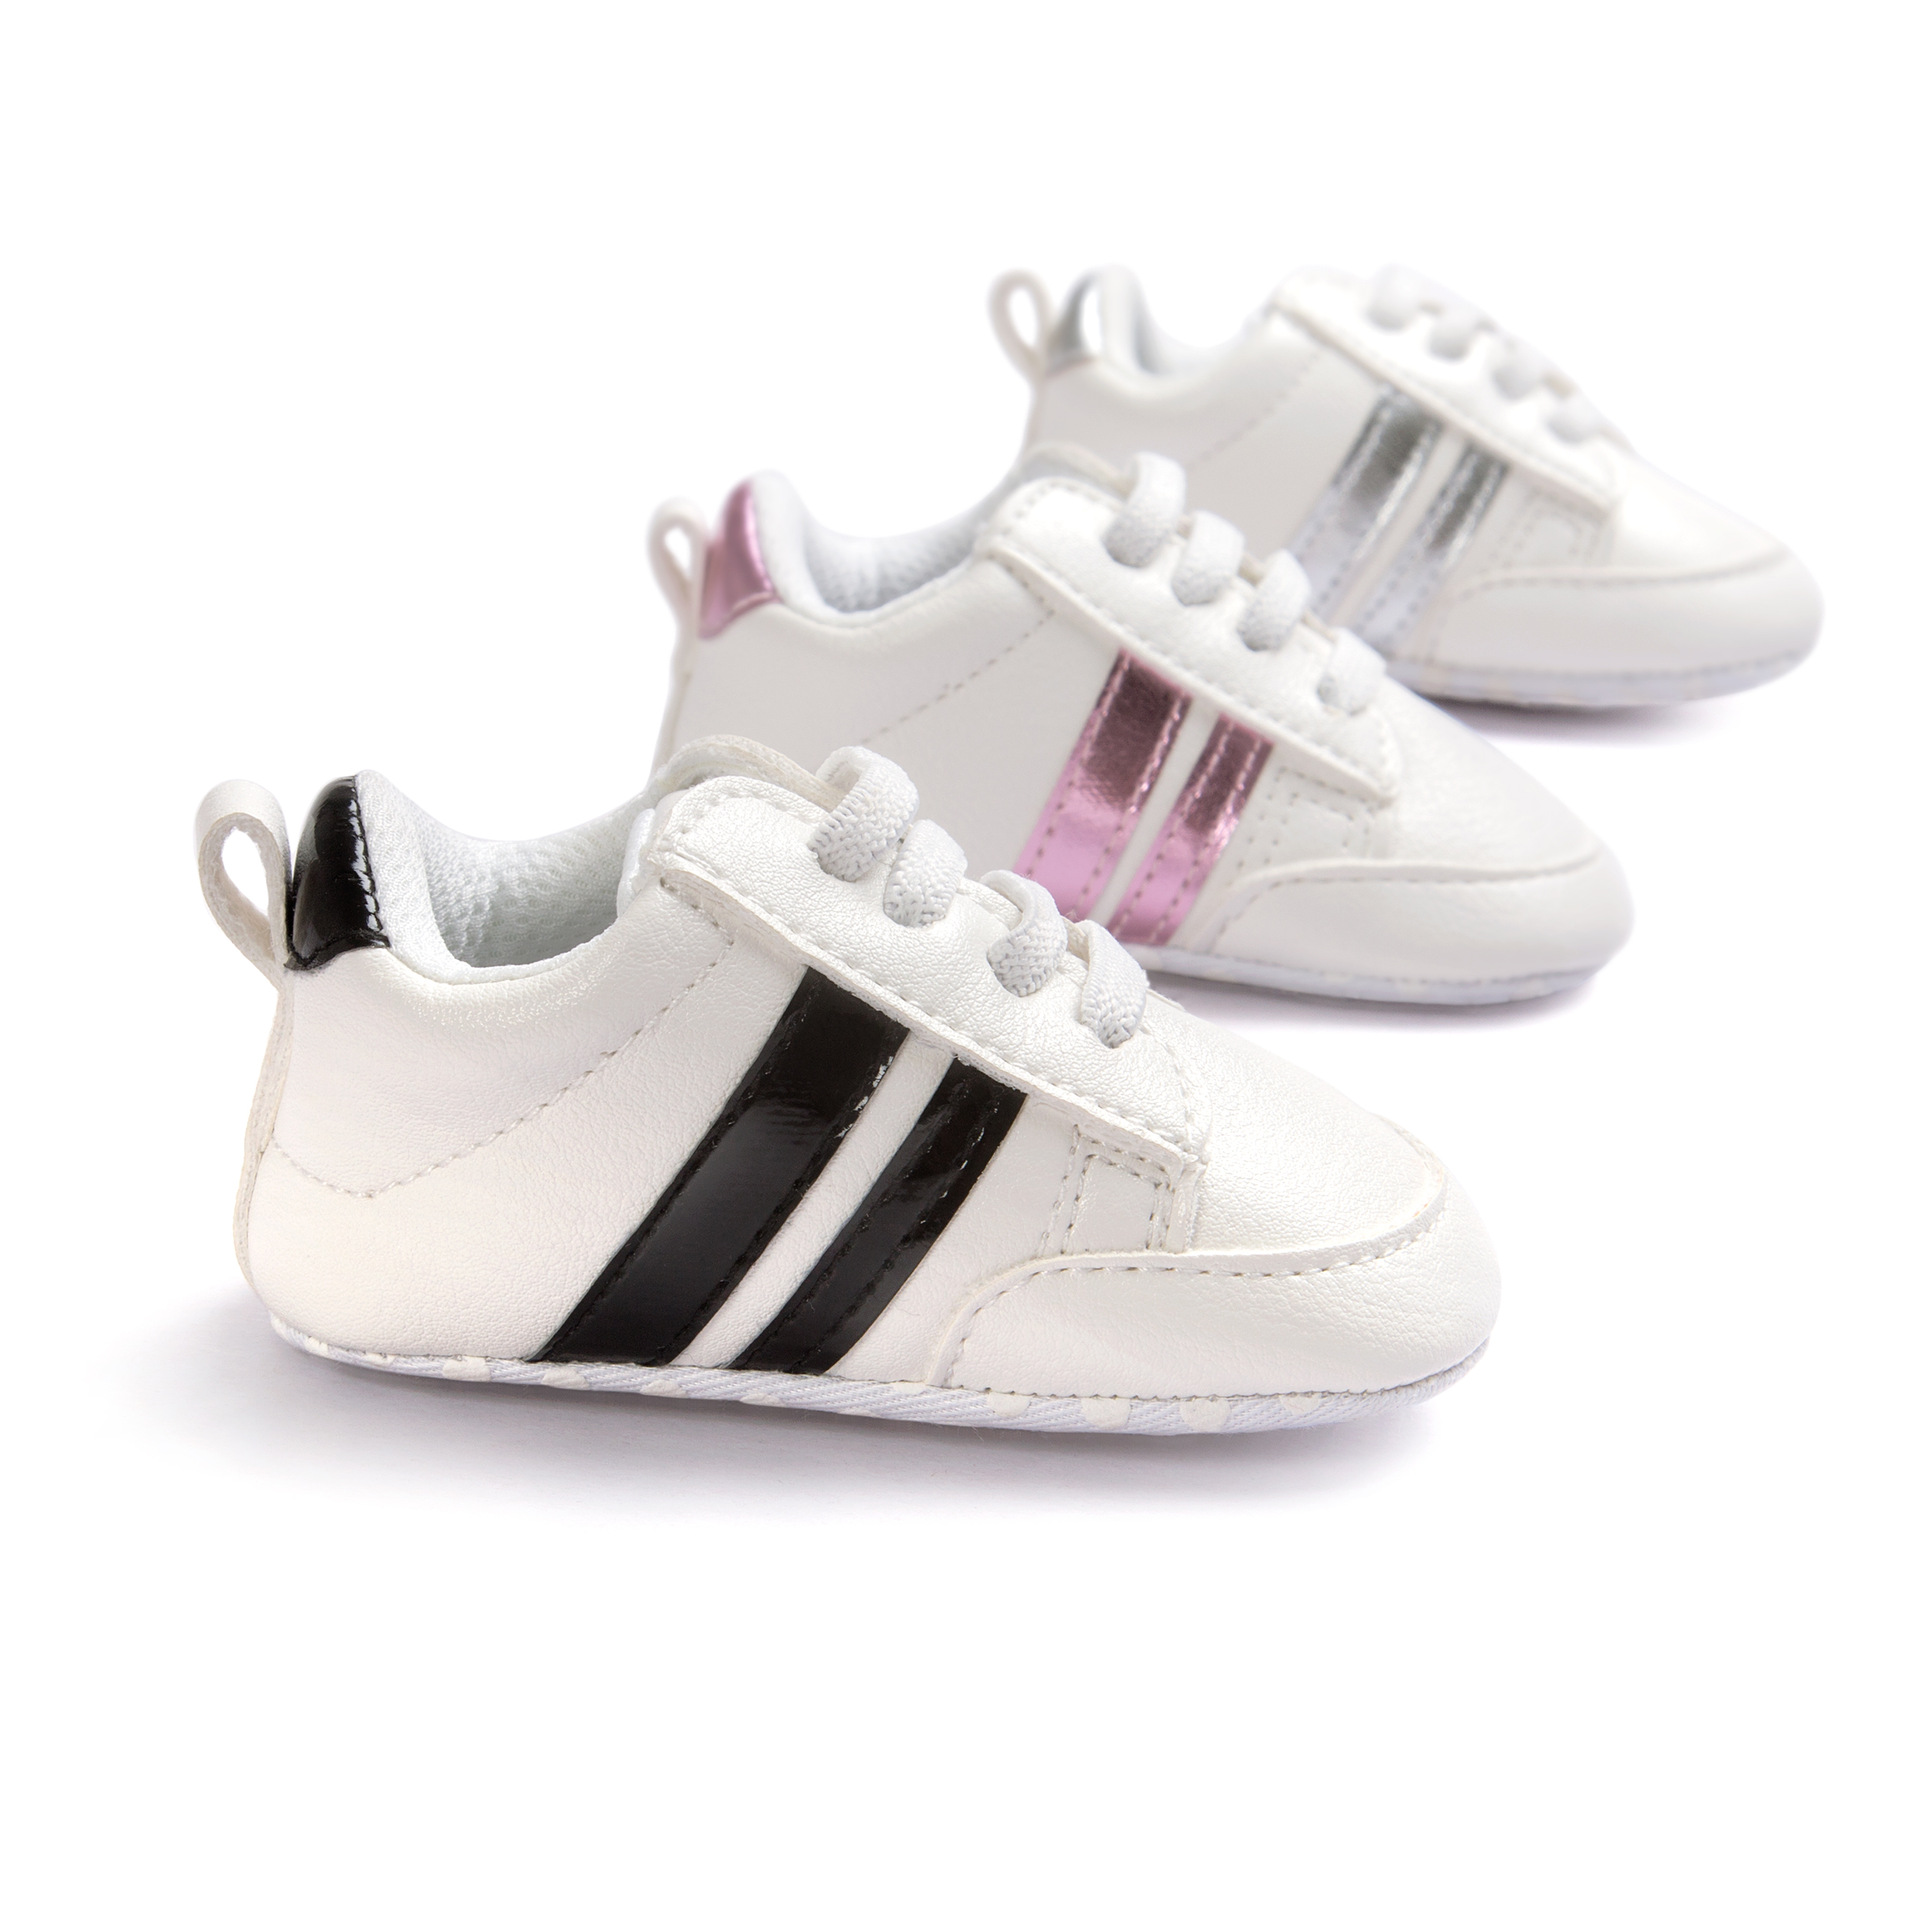 2018 ROMIRUS Soft Bottom Fashion Sneakers Baby Boys Girls First Walkers Baby Indoor Non-slop Toddler Shoes 8 New Colors